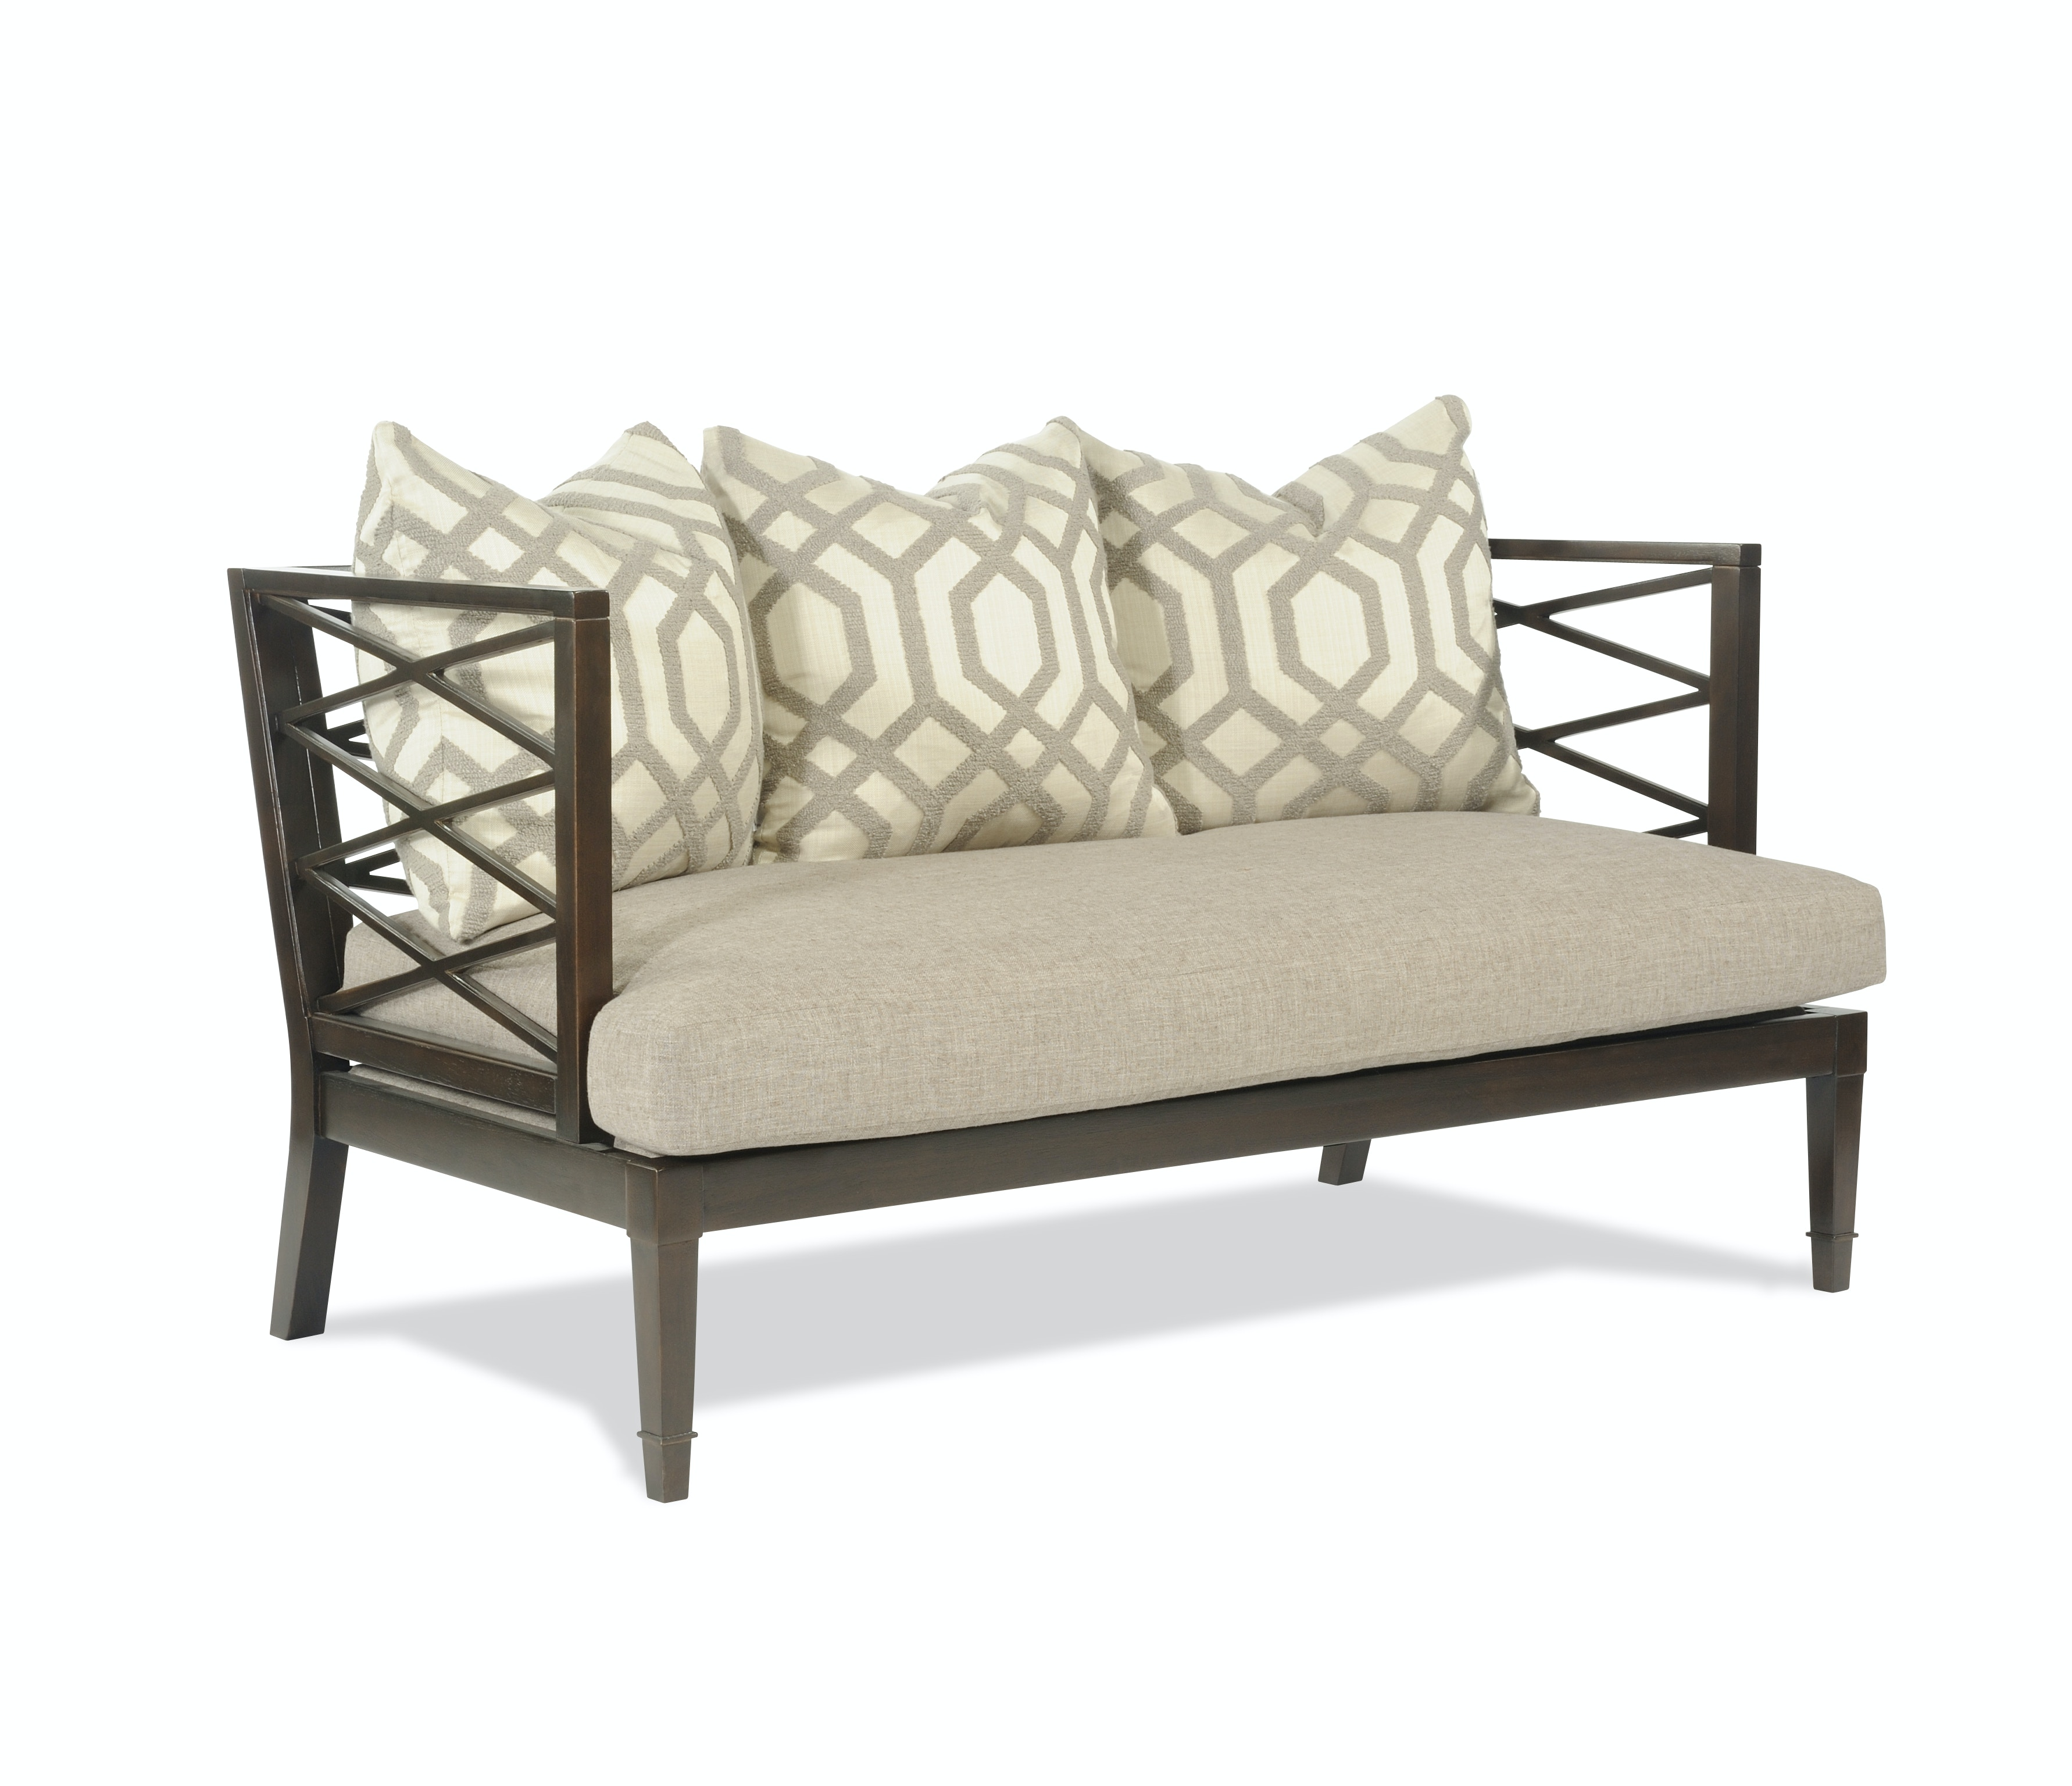 Taylor King Furniture Living Room Walker Settee 1420 02